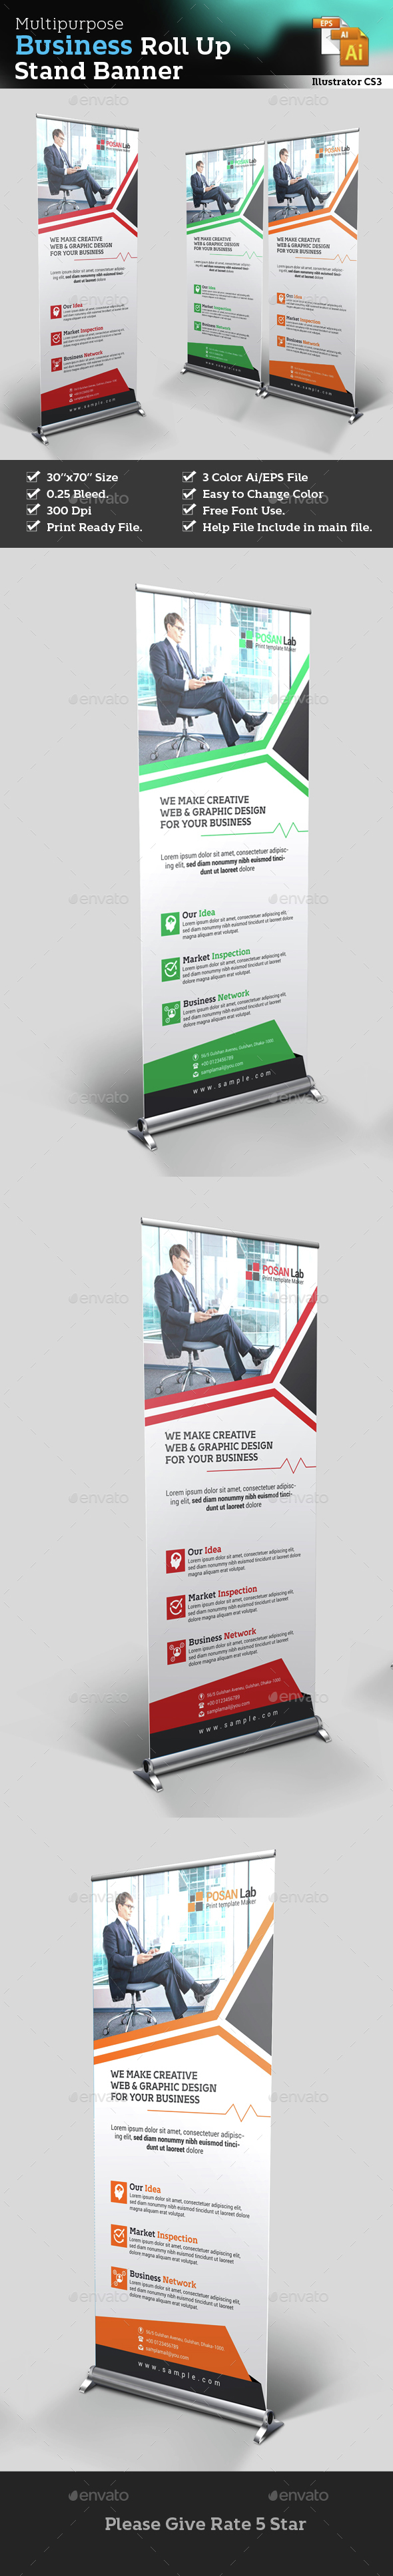 Corporate Roll Up Stand Banner - Corporate Business Cards